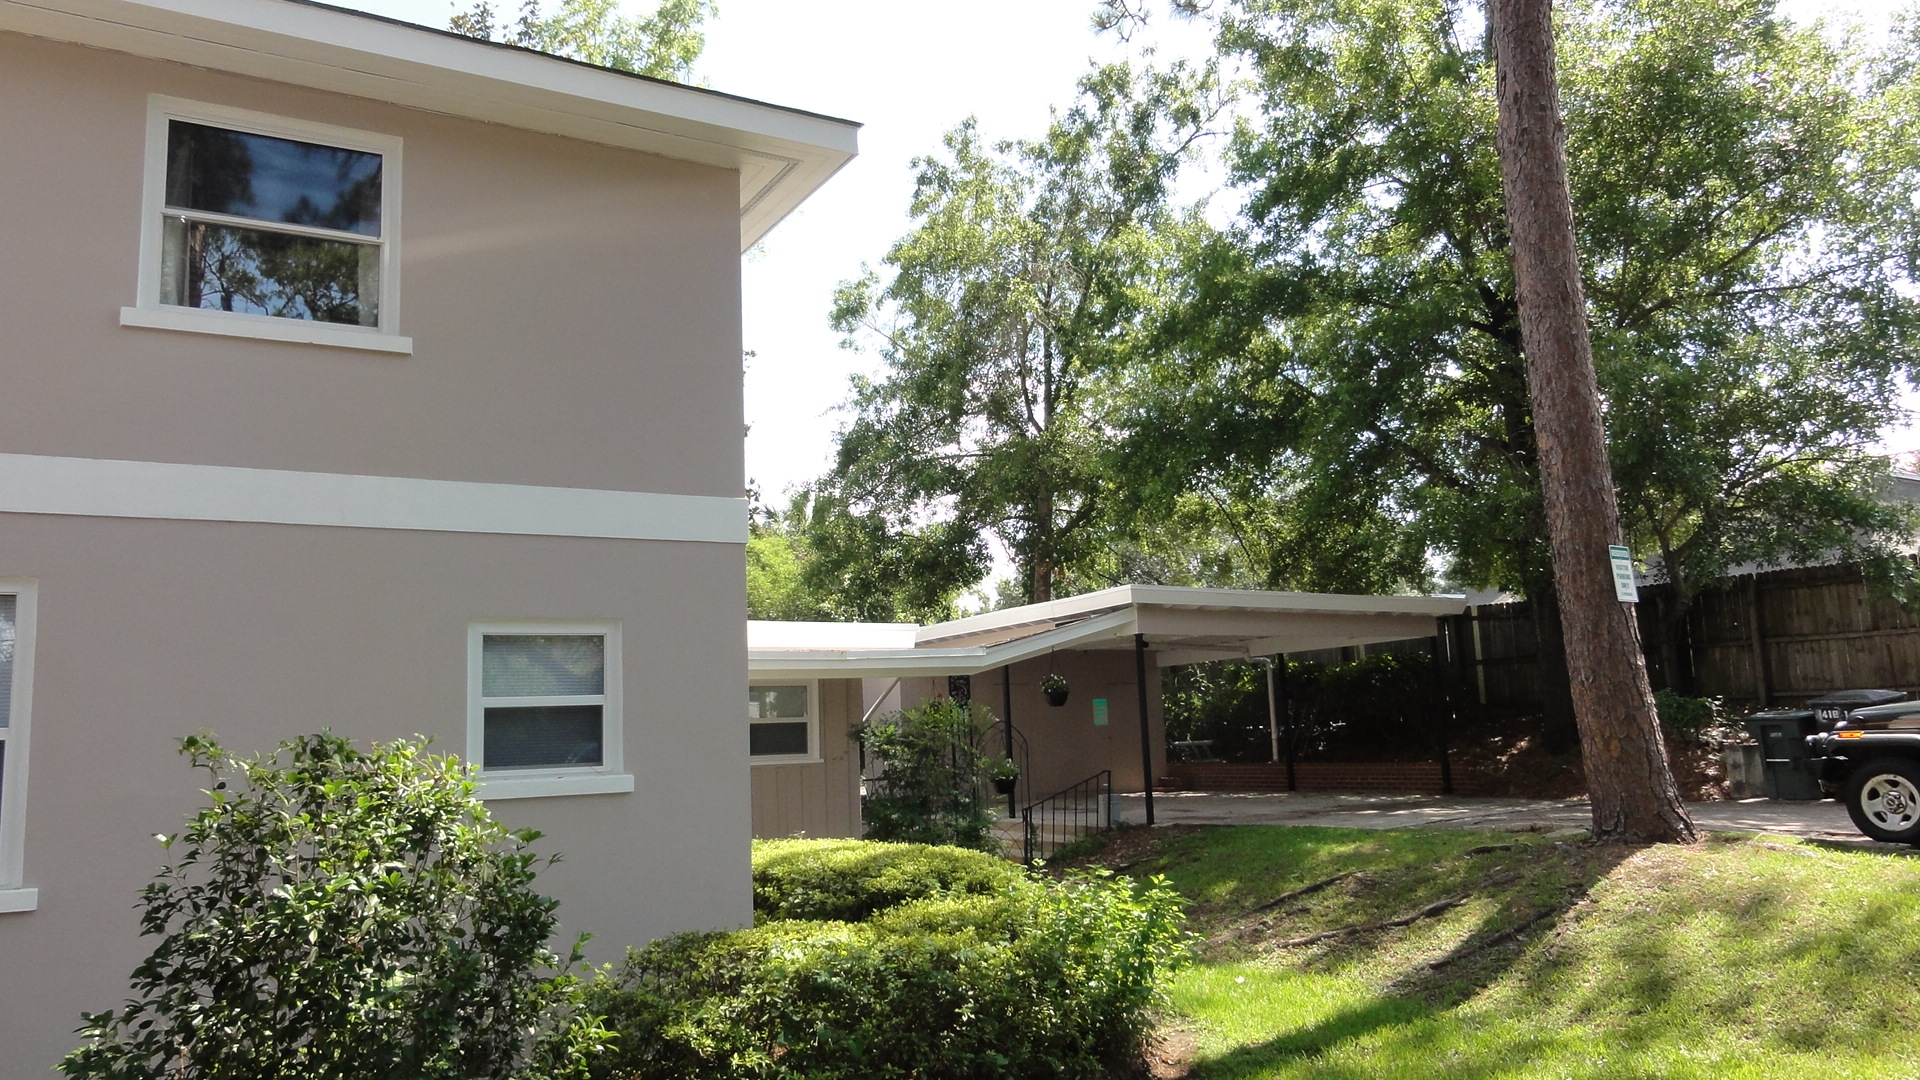 properties rent in bg tallahassee home for minneapolis apartments mn one oaks bedroom